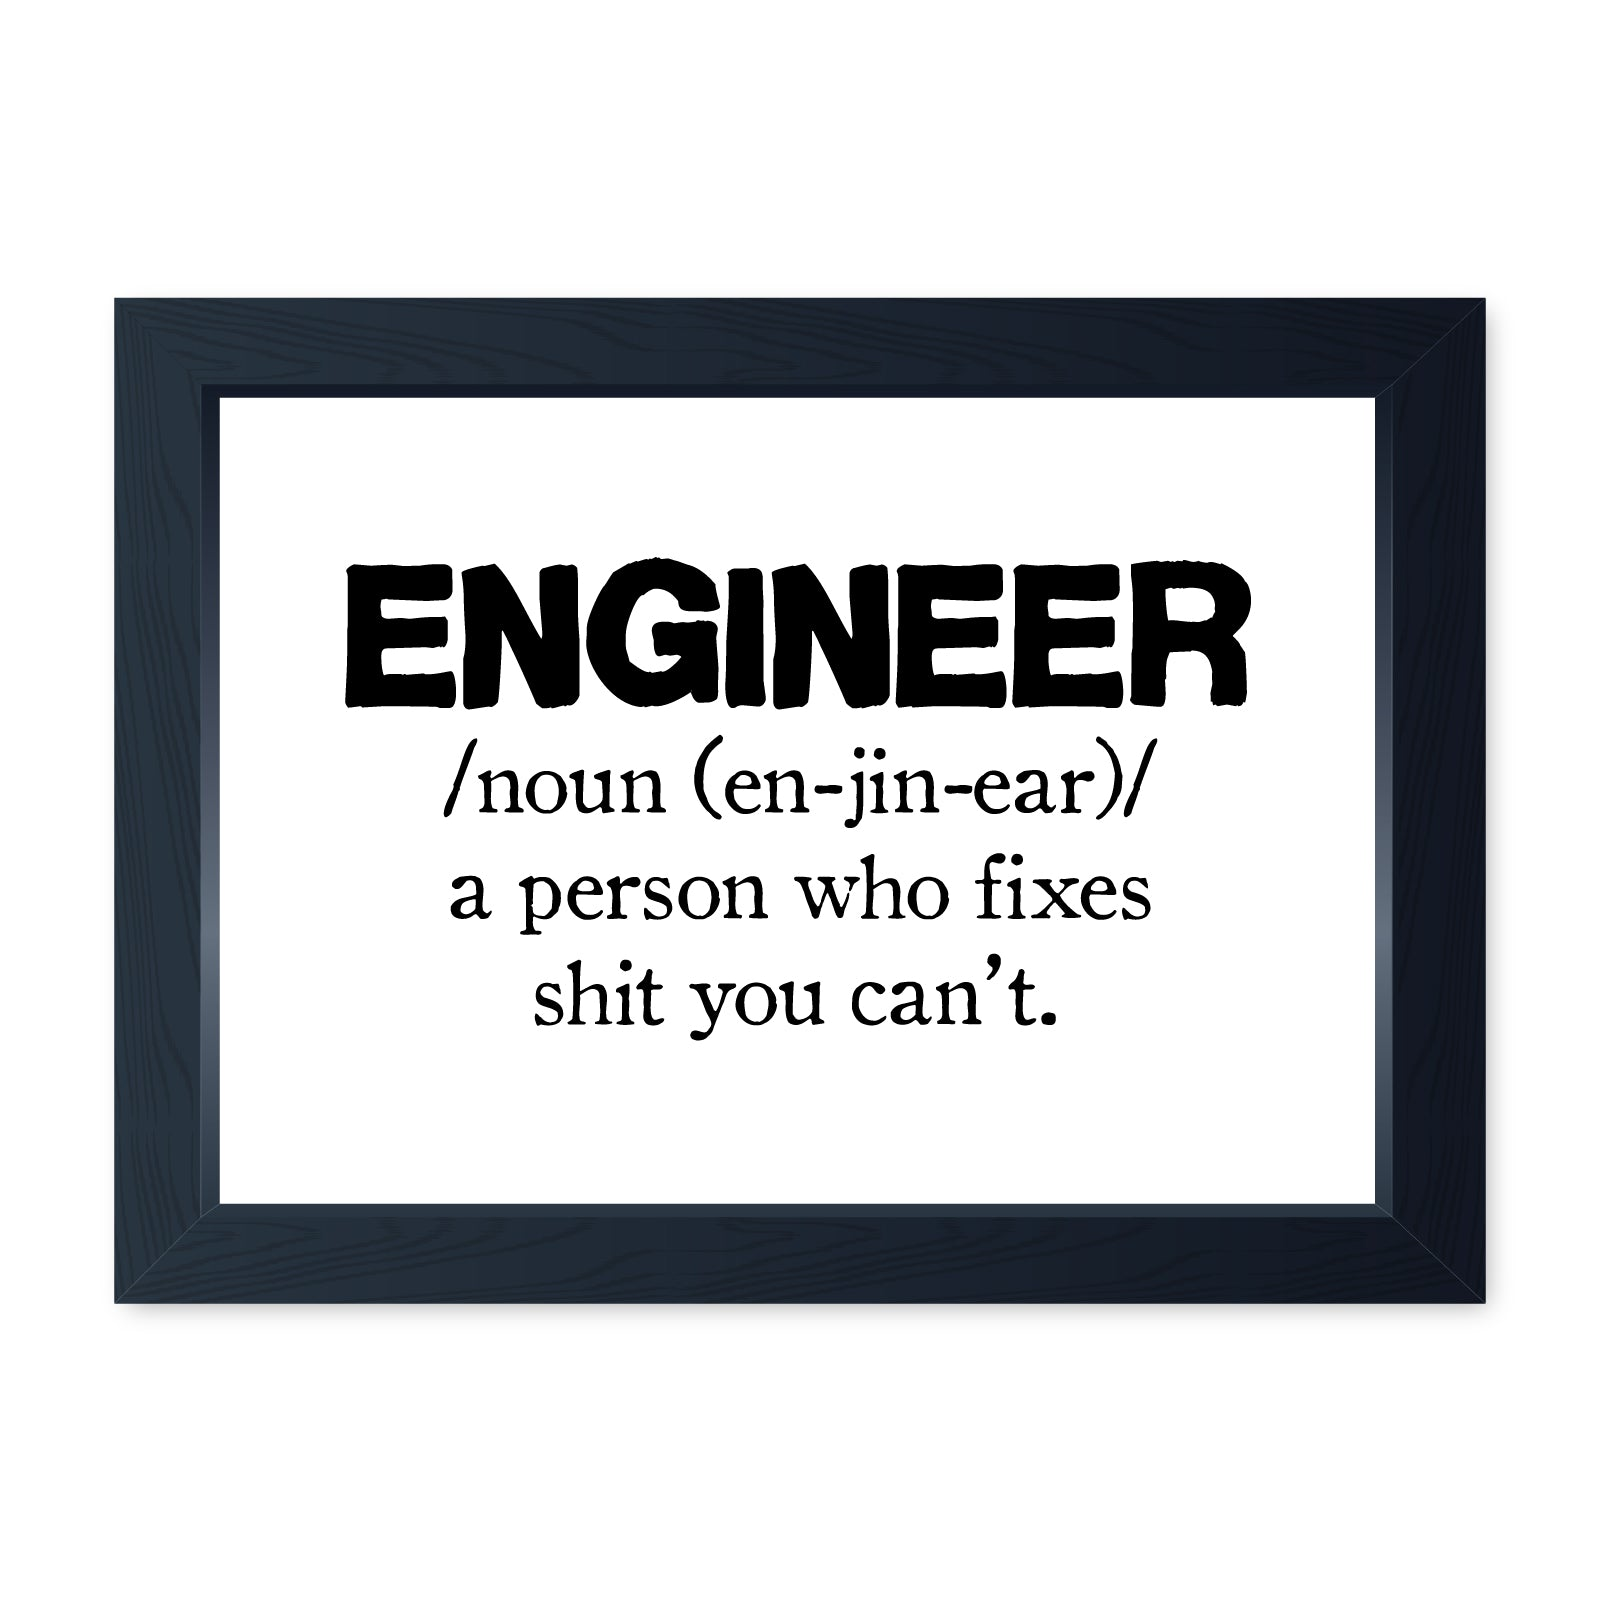 Engineer Noun, Funny Framed Print - Home Decor Kitchen Bathroom Man Cave Wall Art